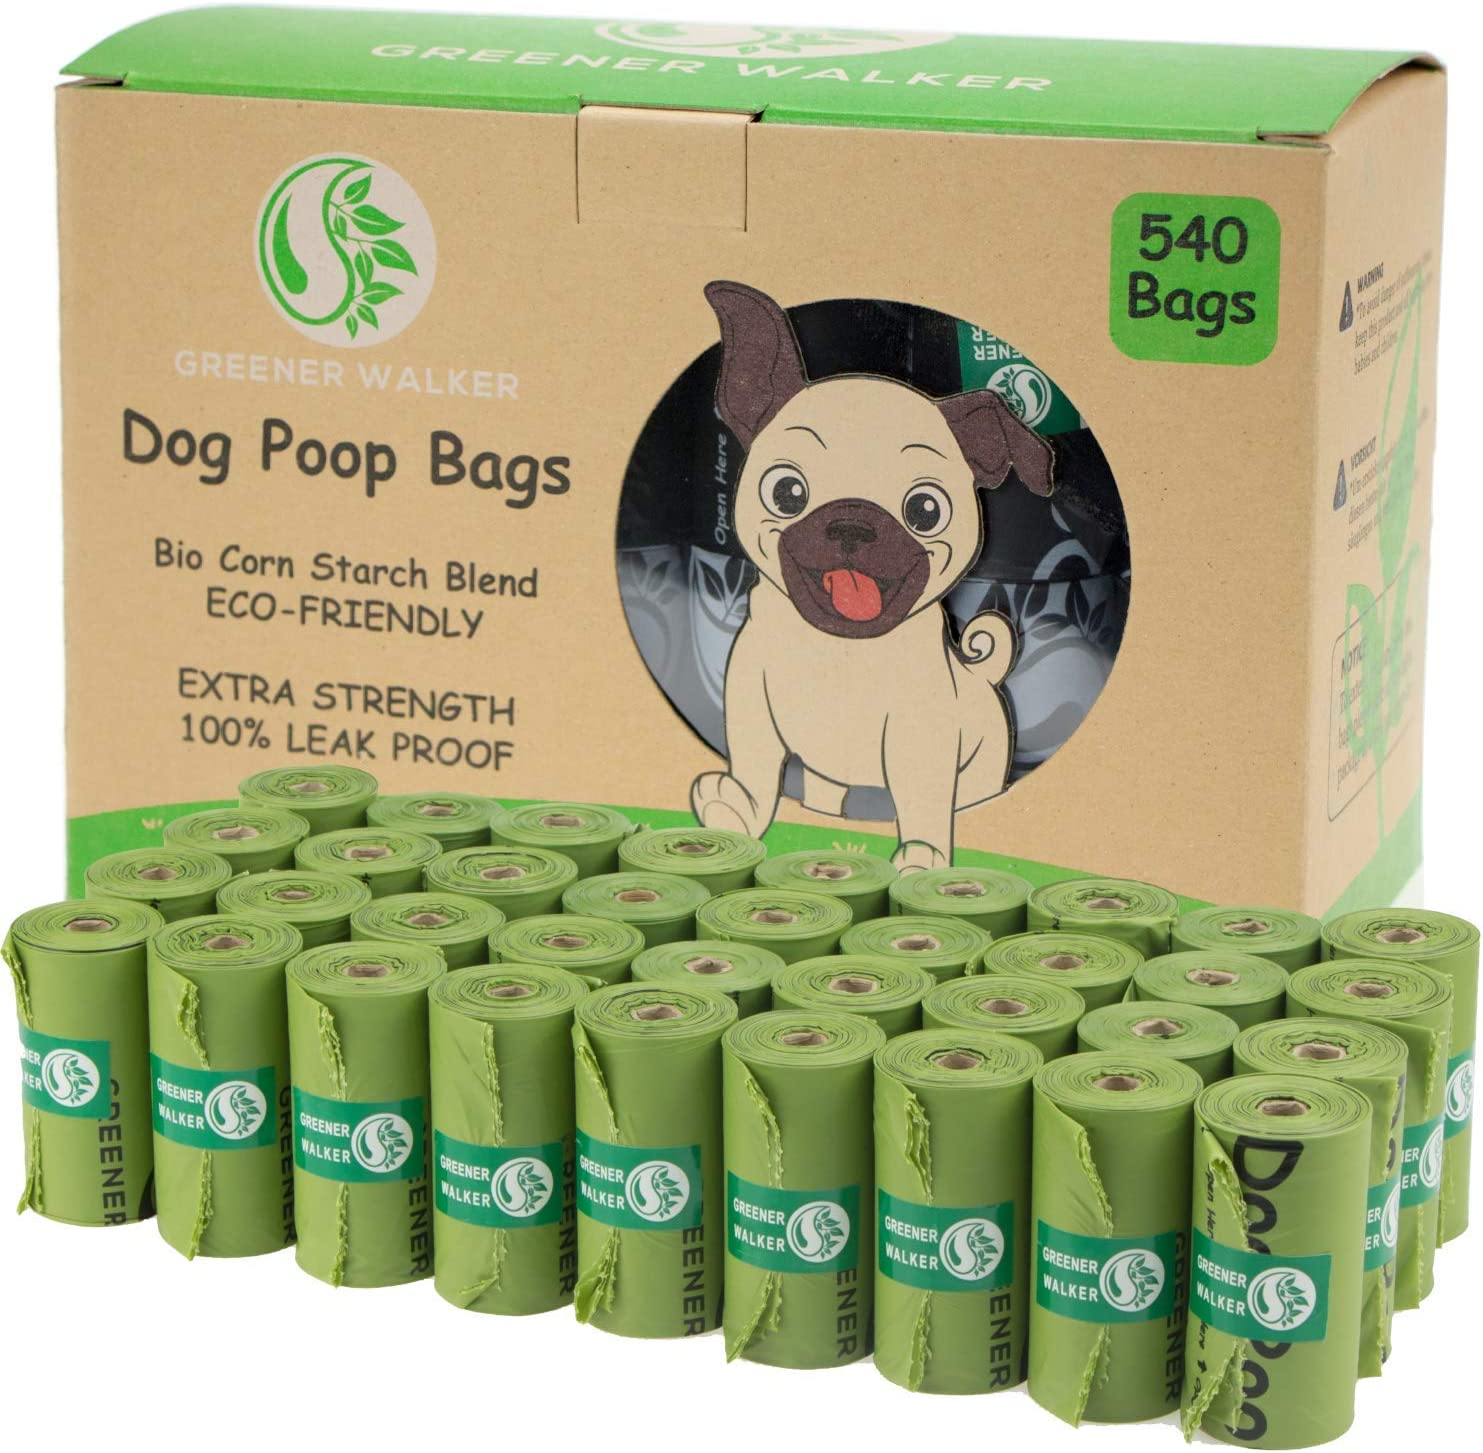 Greener Walker Poop Bags for Dog Waste-540 Bags,Extra Thick Strong 100% Leak Proof Biodegradable Dog Waste Bags